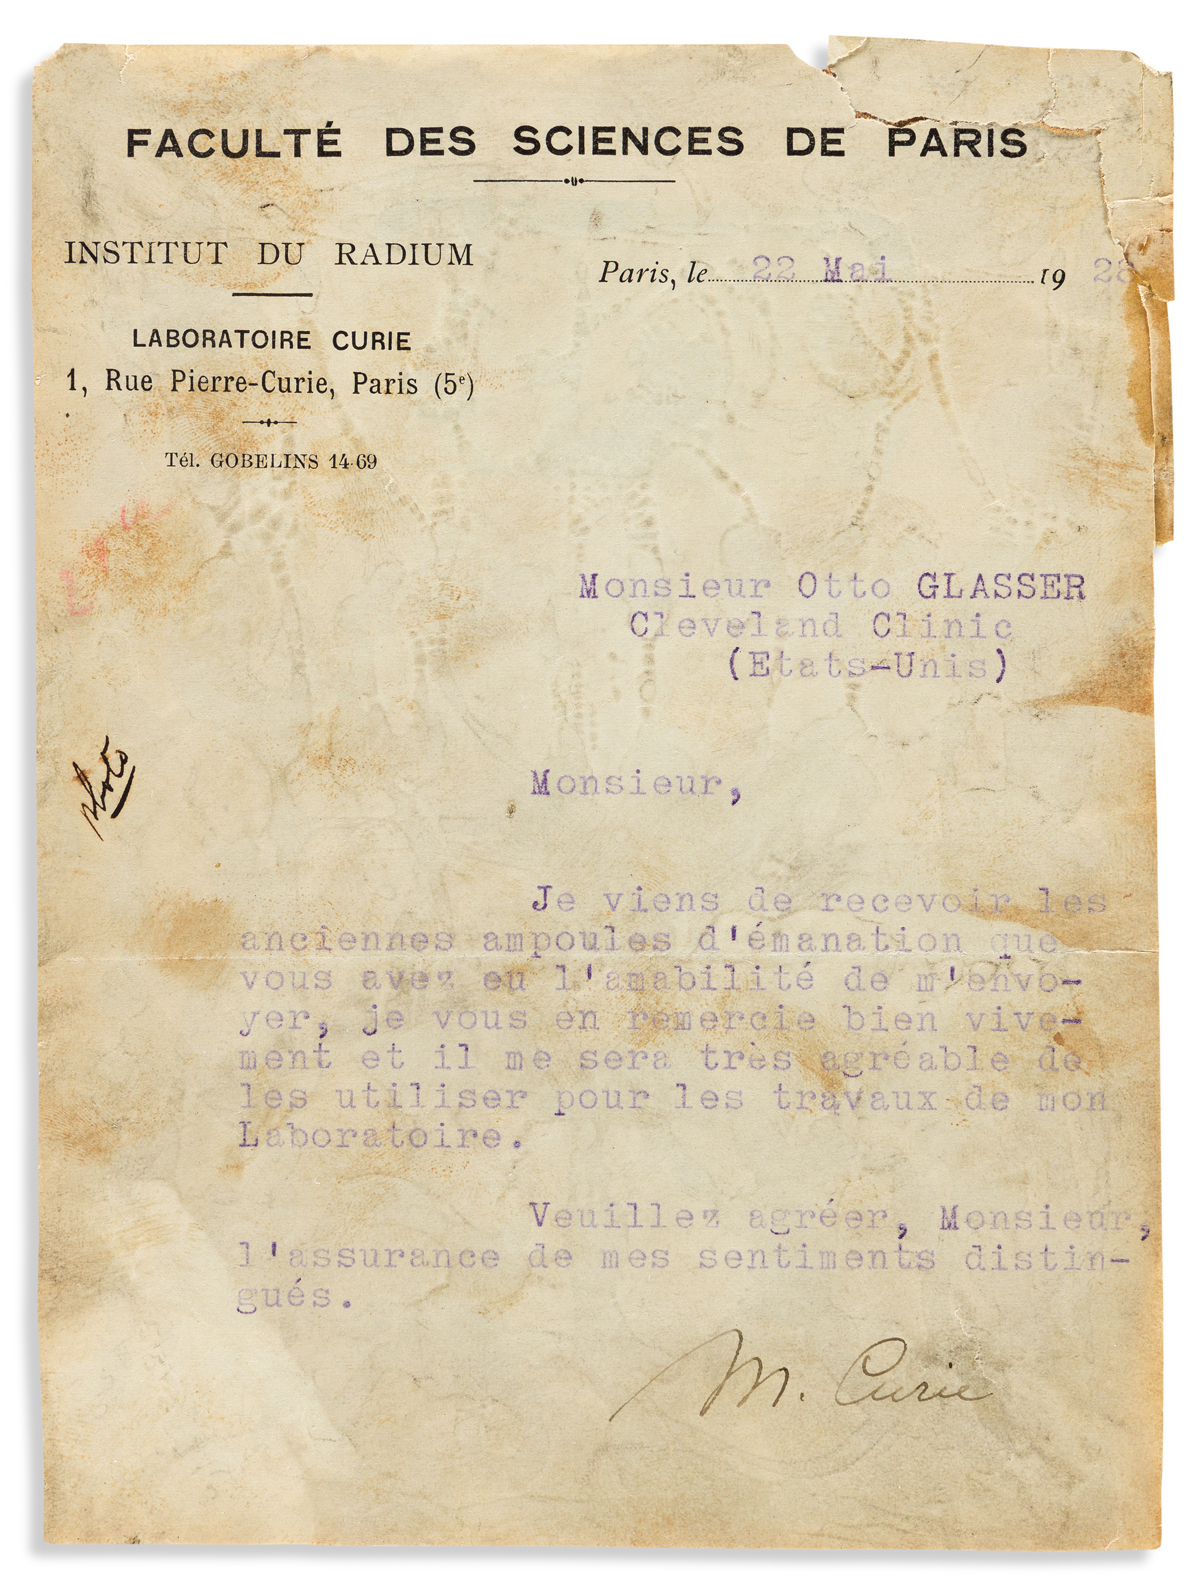 (MEDICINE.) CURIE, MARIE. Brief Typed Letter Signed, M. Curie, to Otto Glasser in Cleveland, in French: